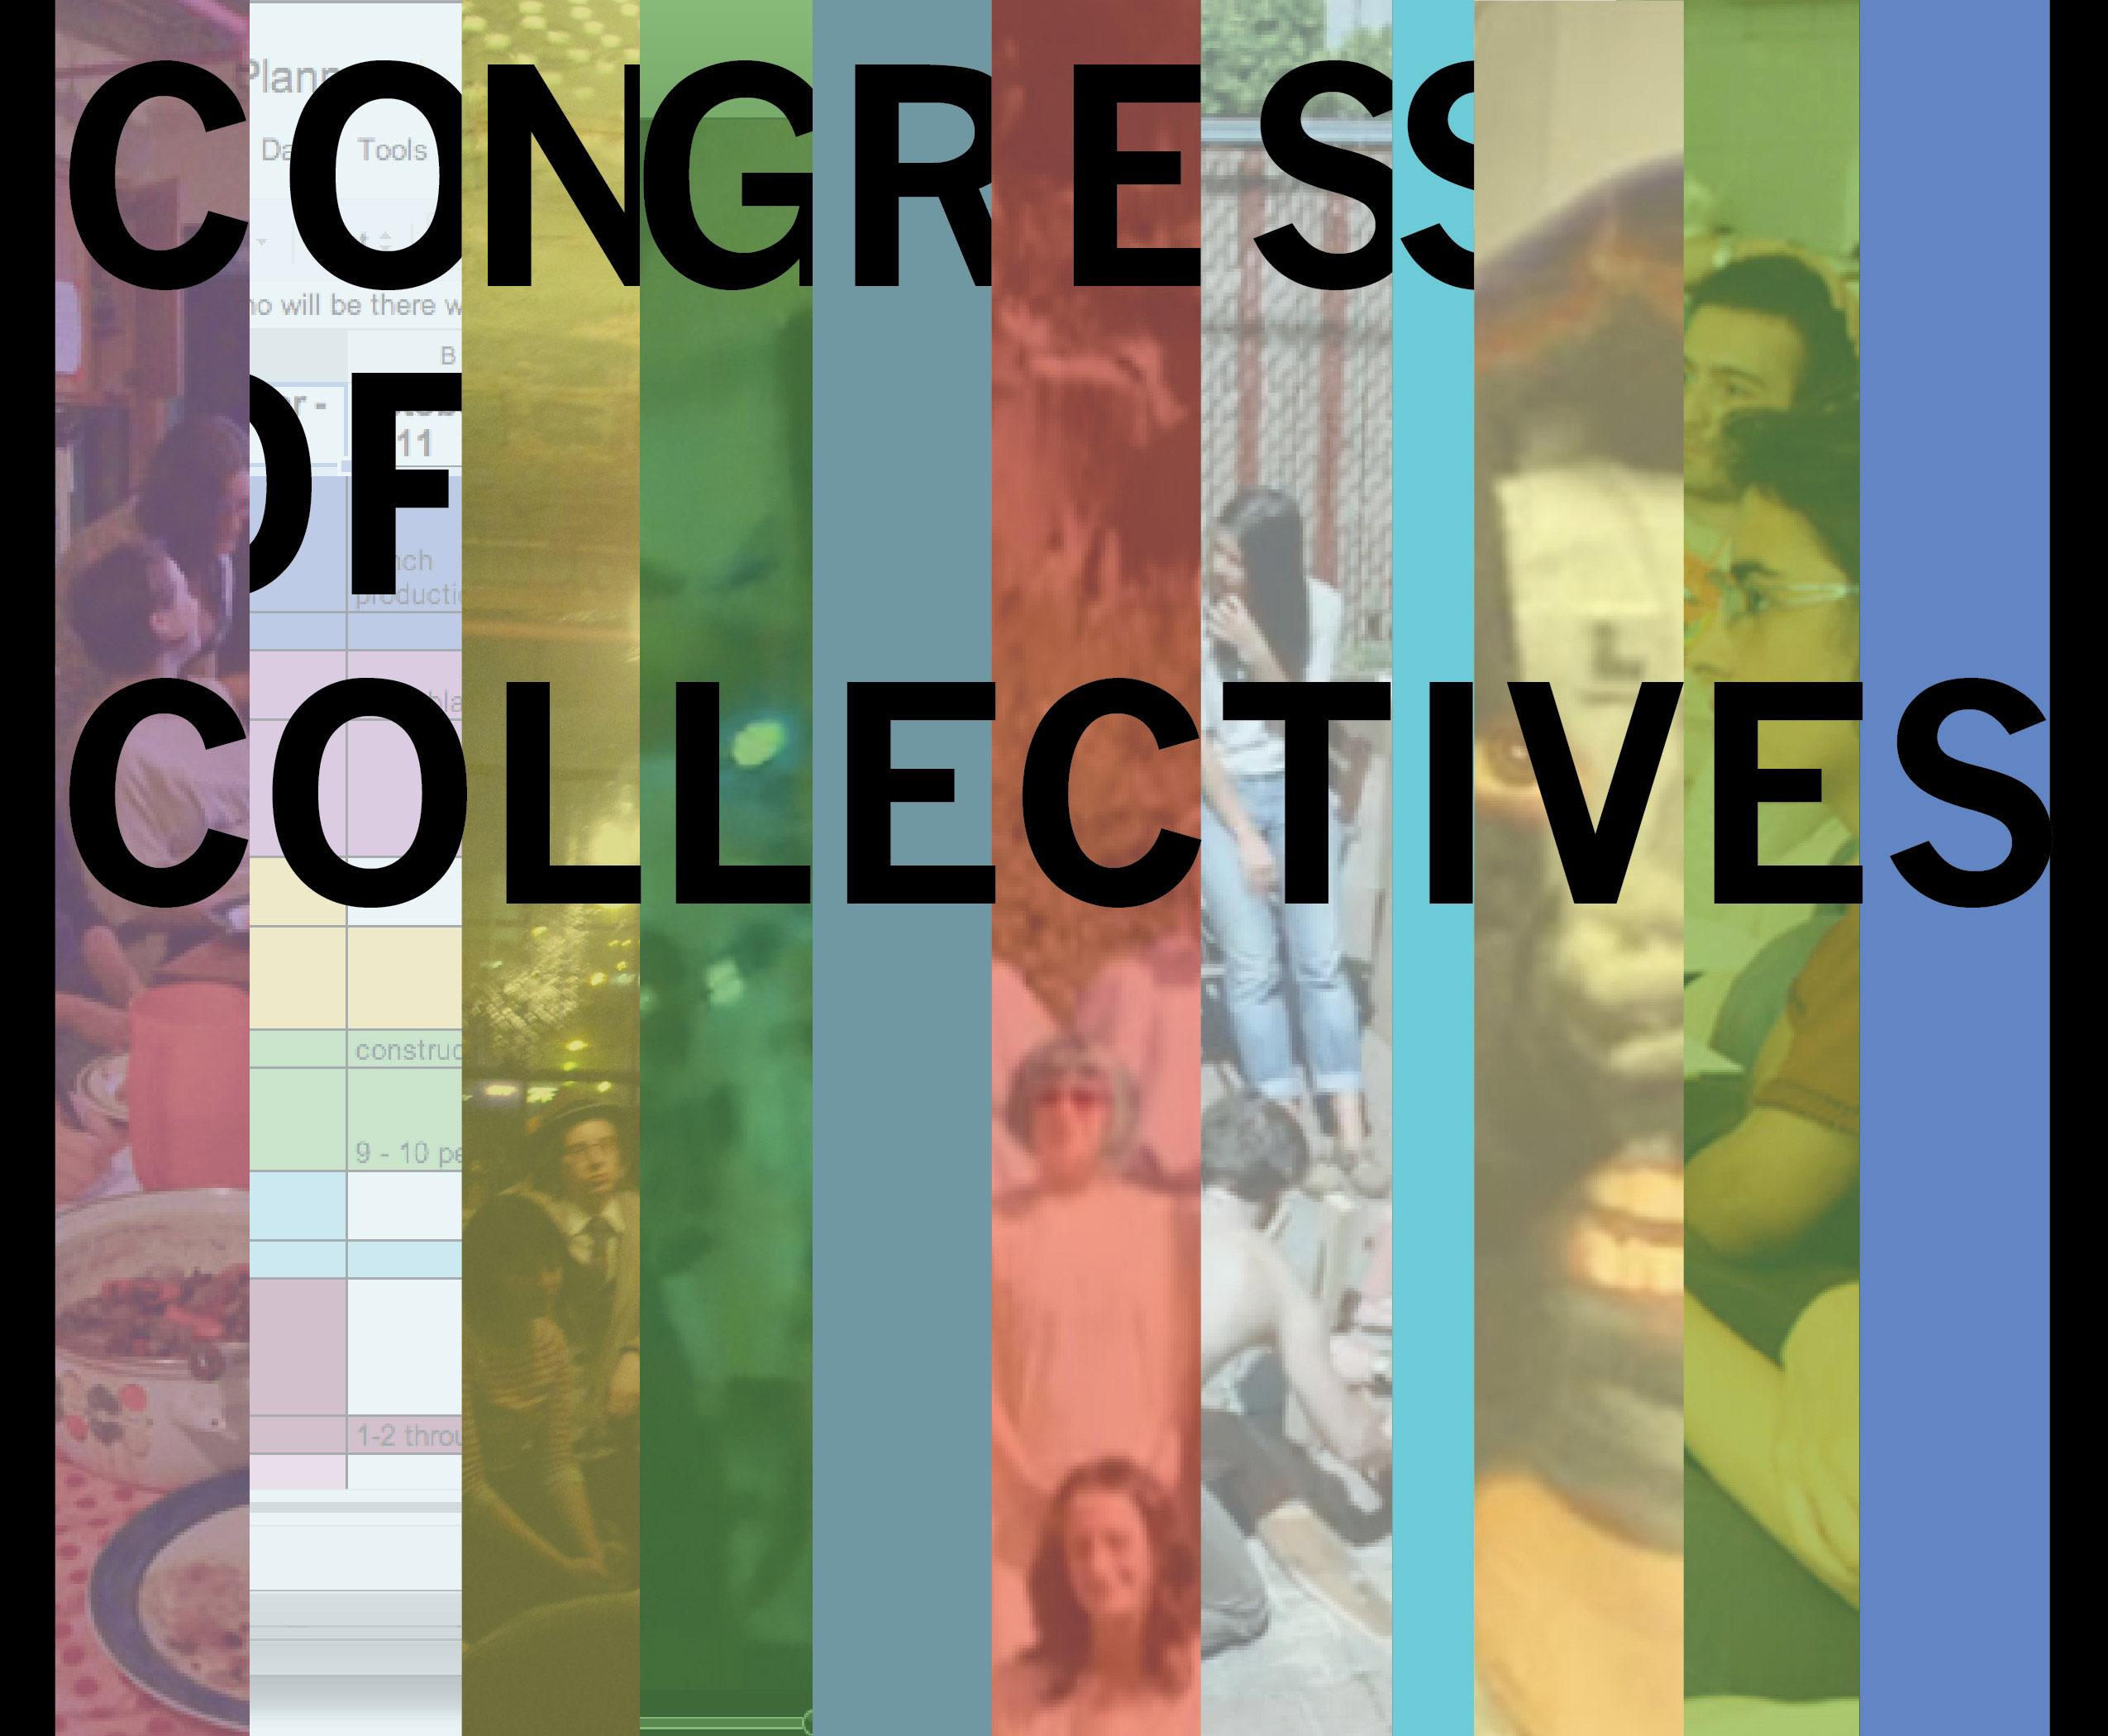 Congress Of Collectives